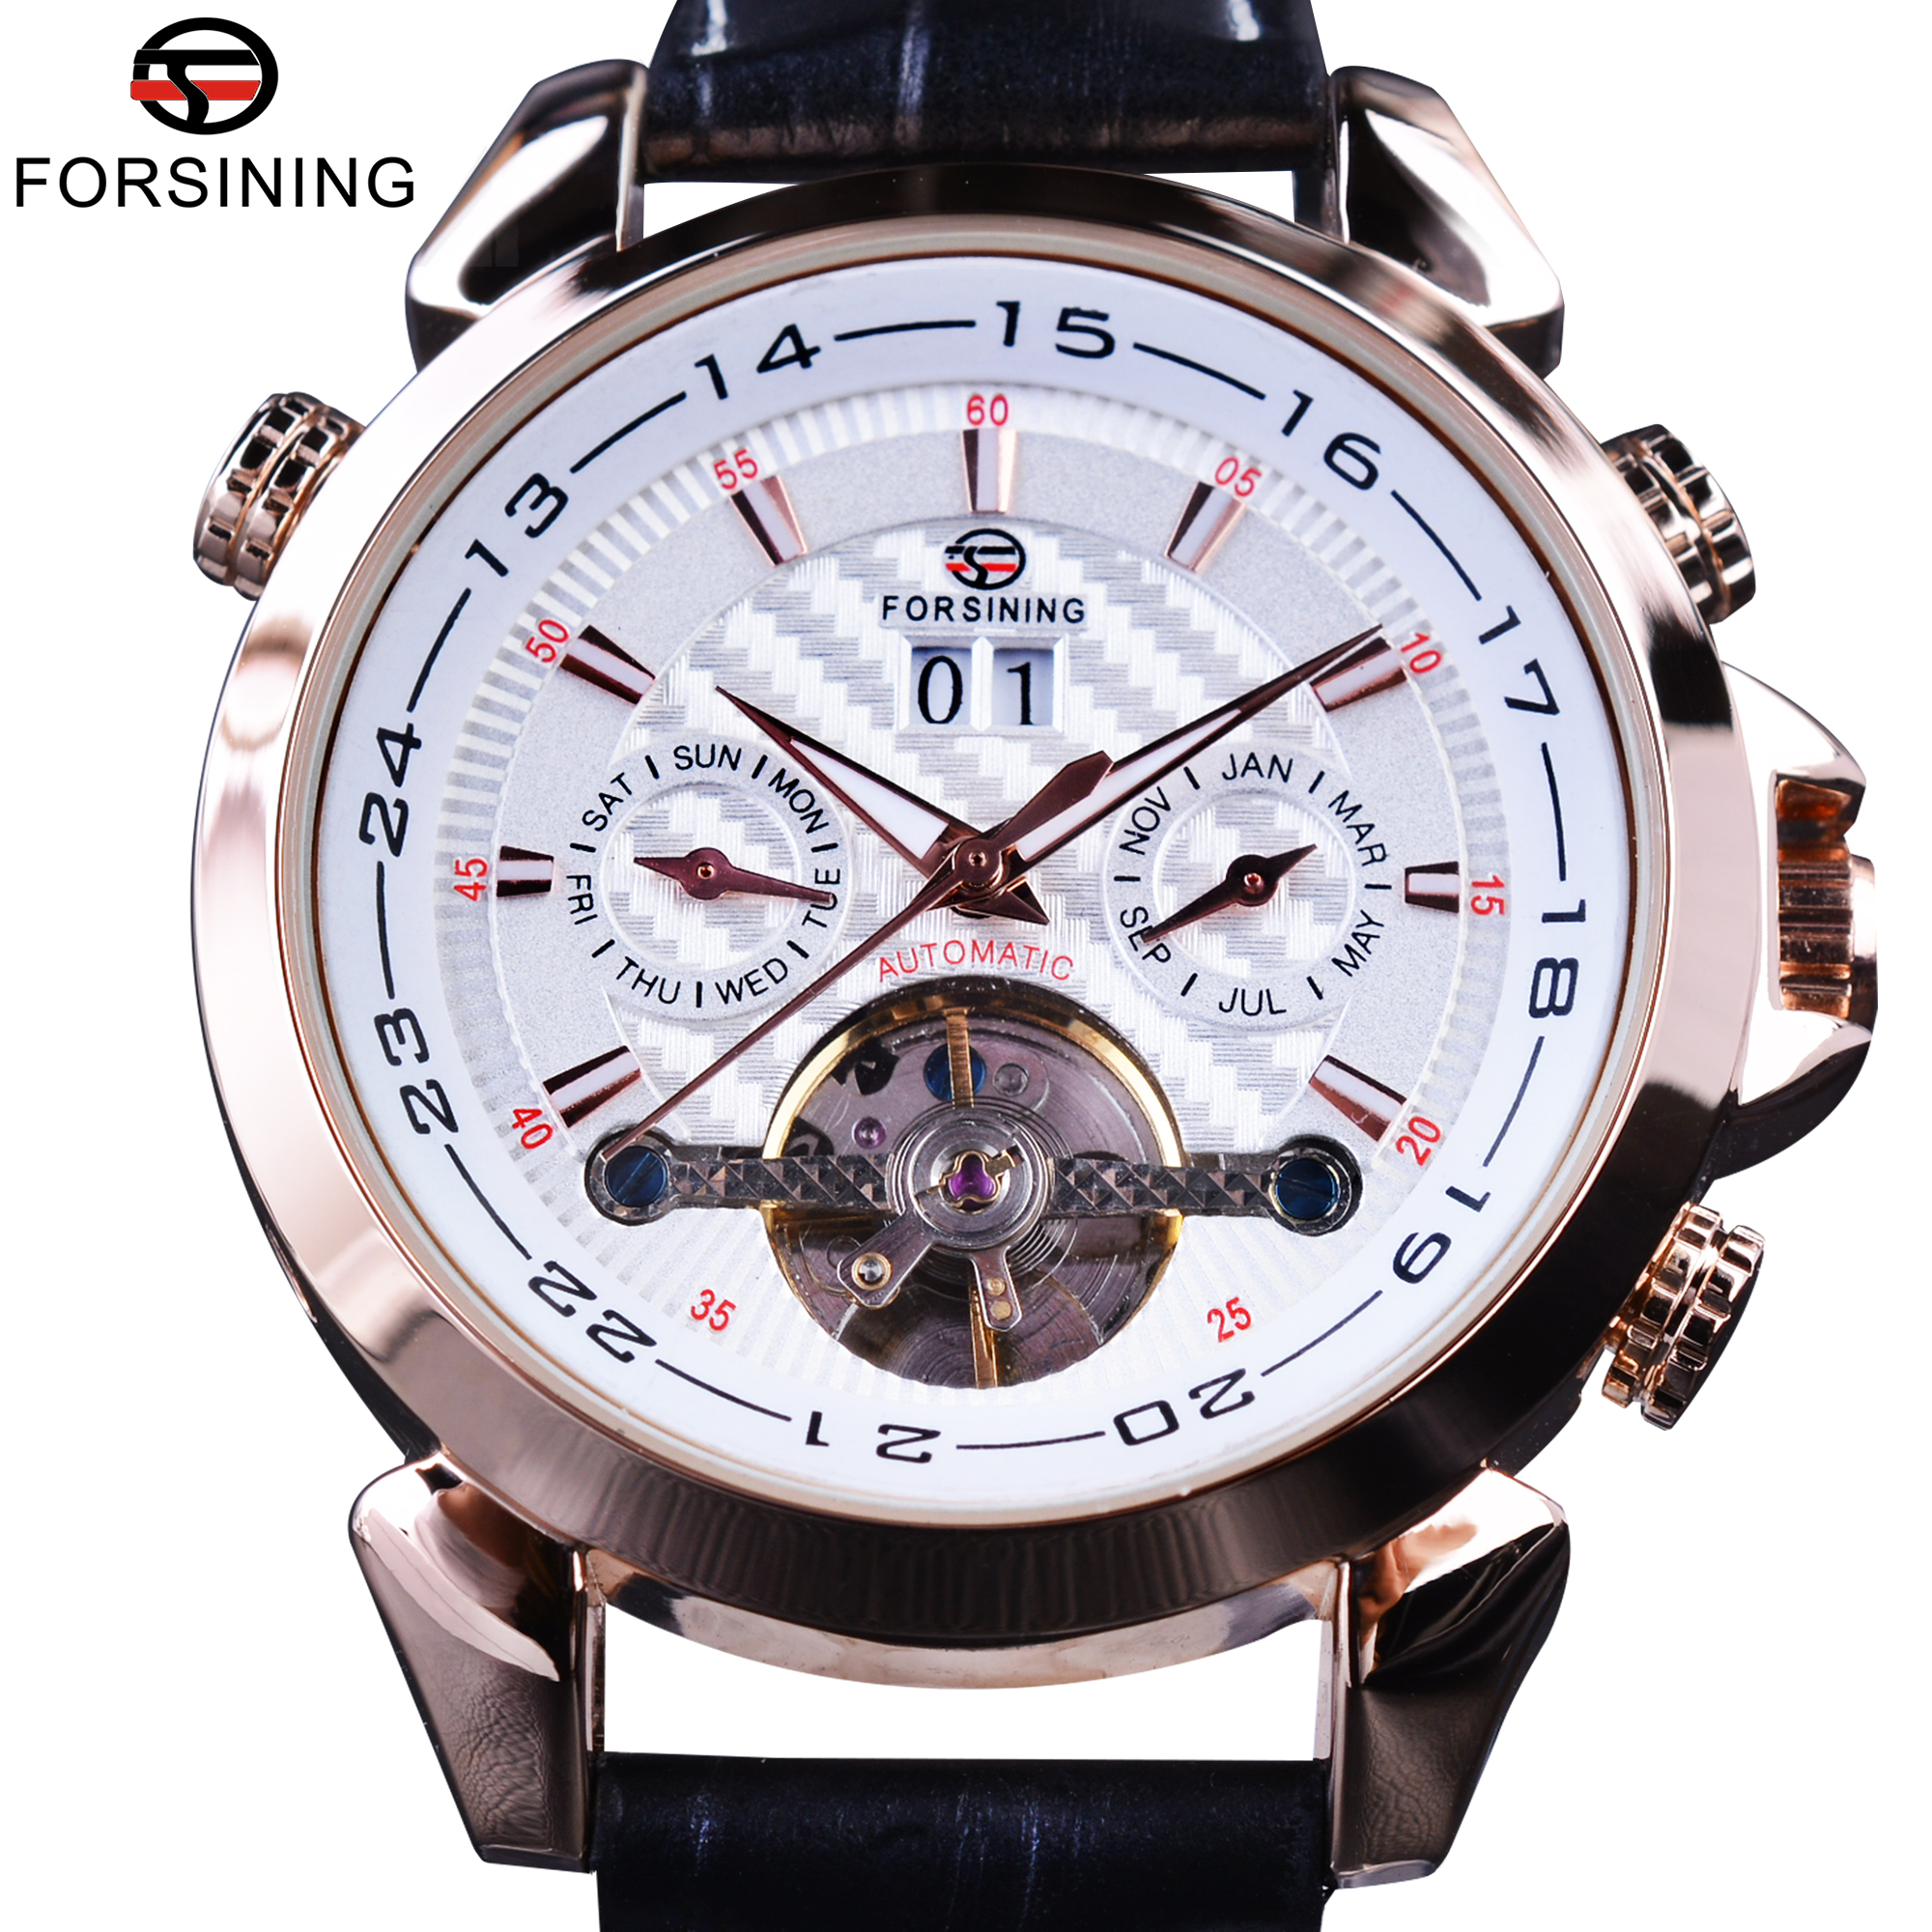 men watches from band vintage designer watch sport hot online sale mens shopping fashionable boxes for product cases shop